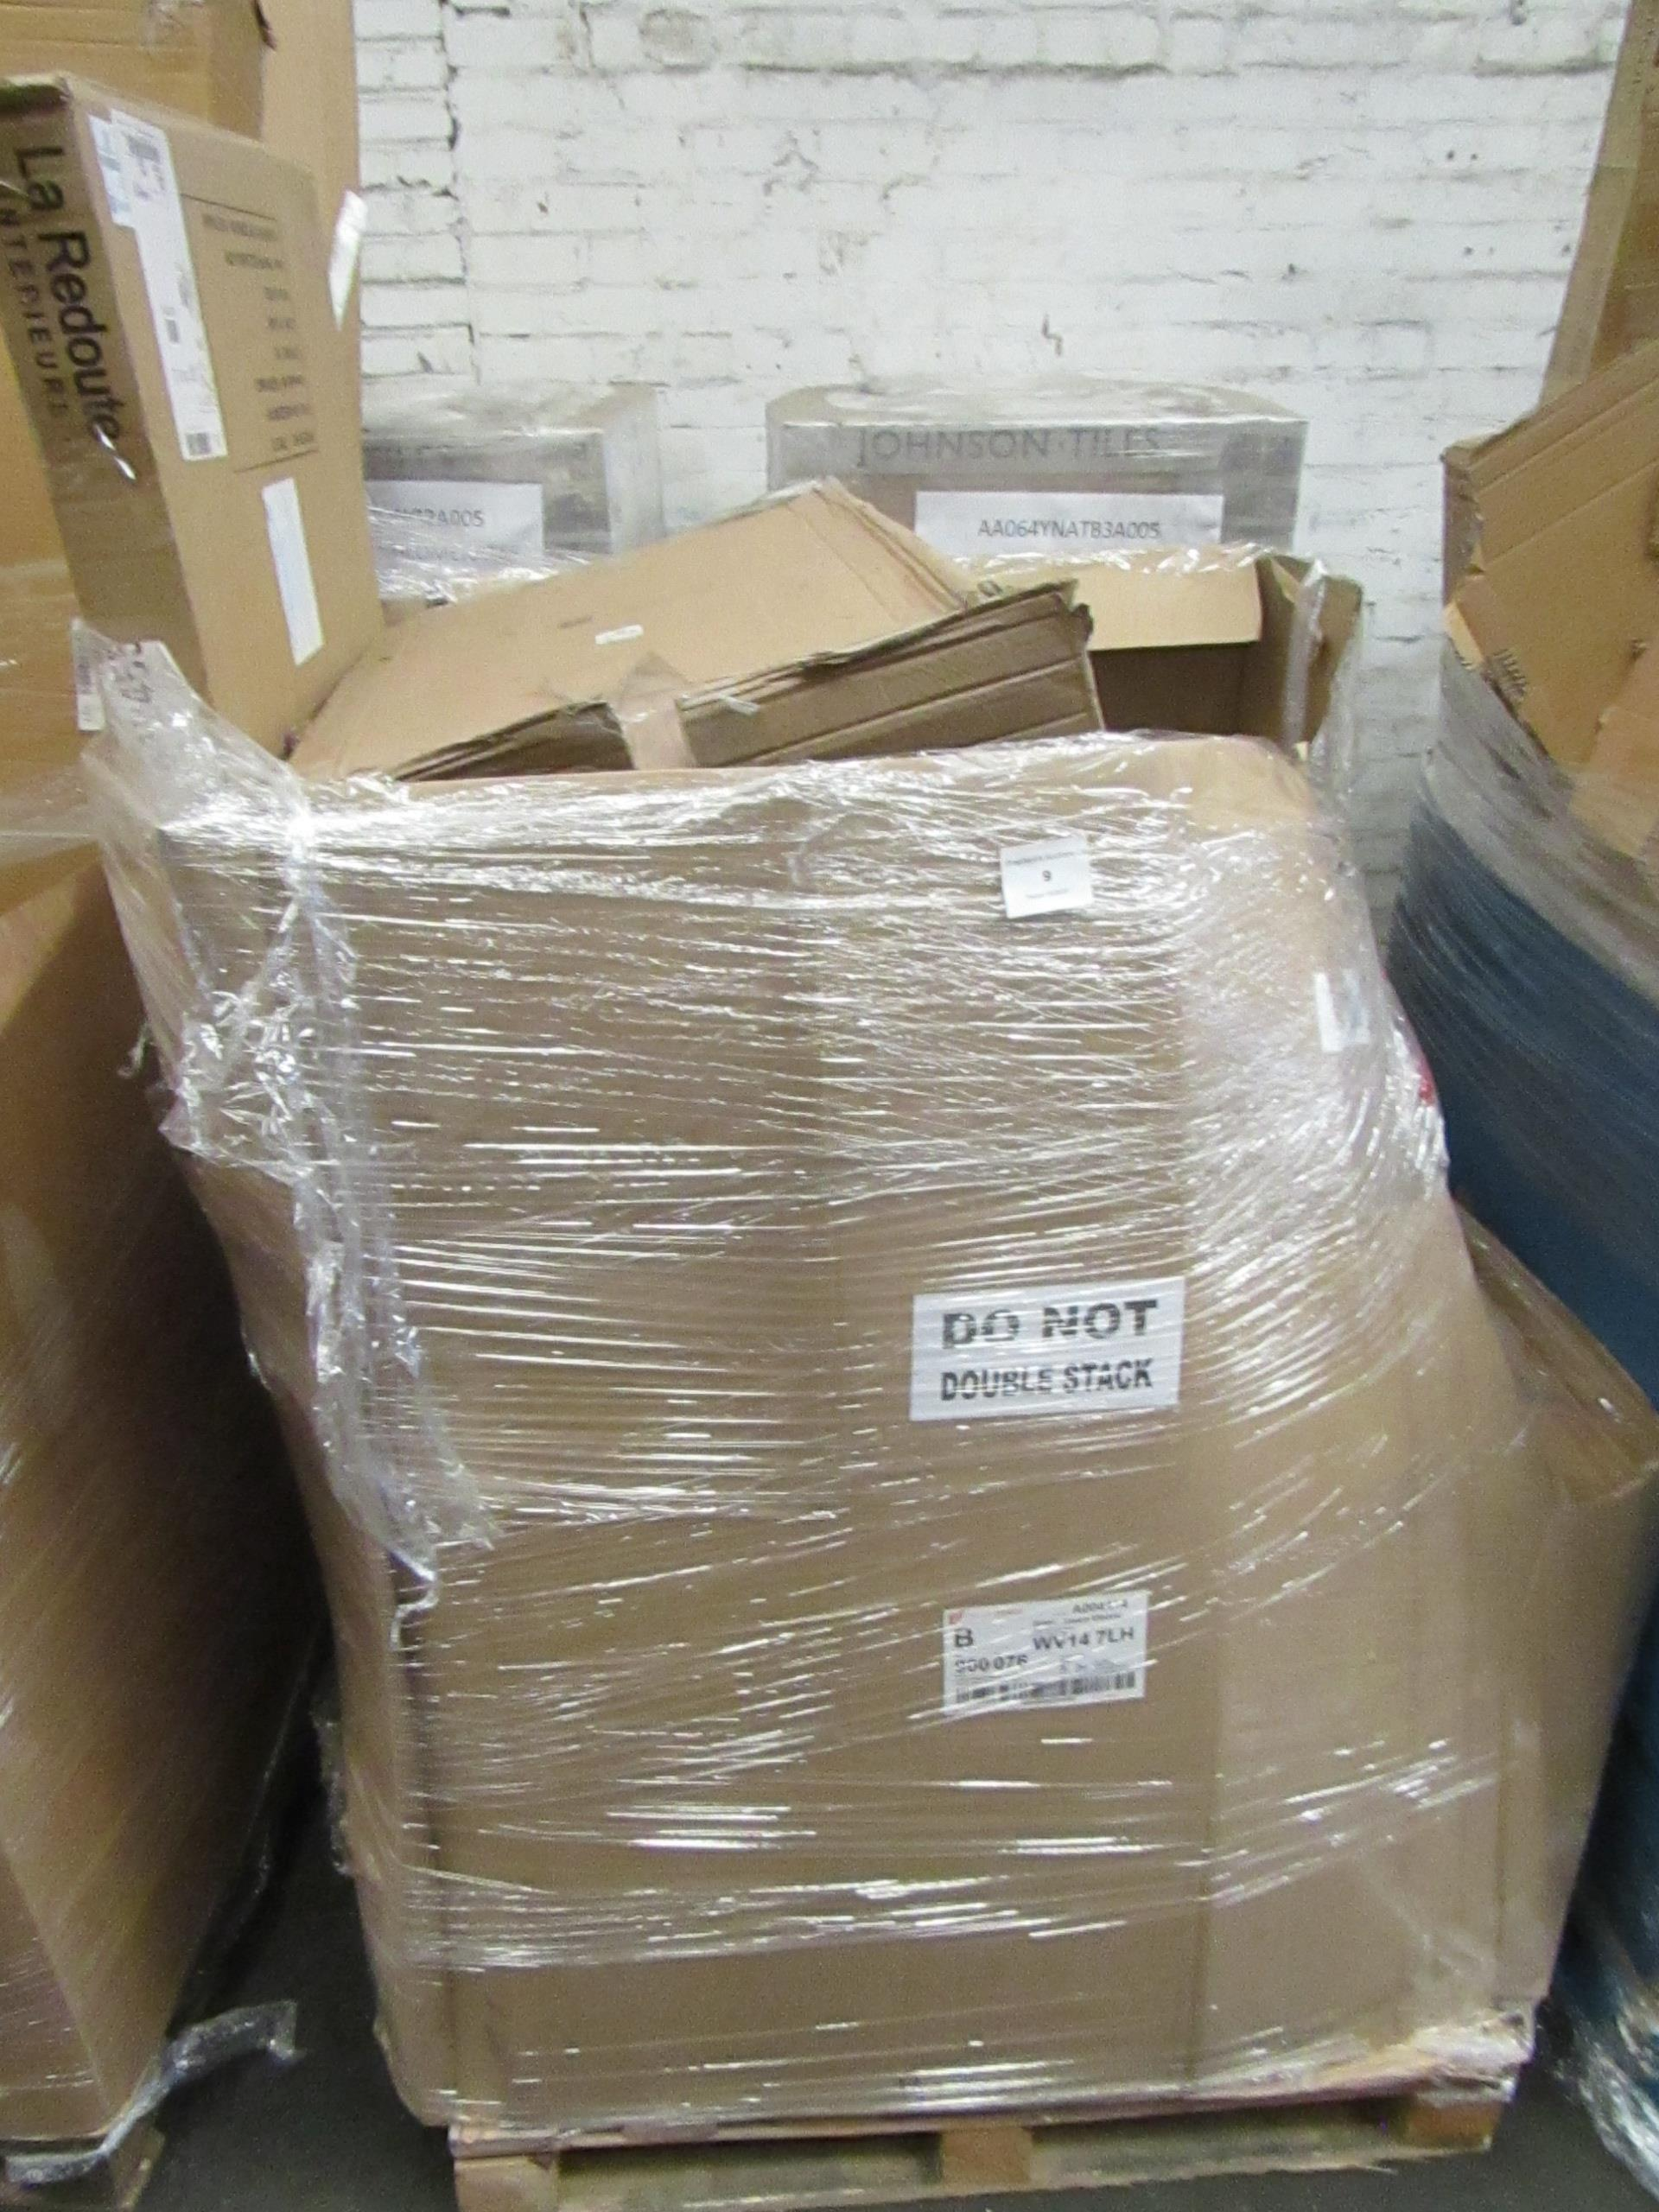 | 1X | PALLET OF LA REDOUTE B.E.R FURNITURE, UNMANIFESTED, TYPICAL ITEMS INCLUDE SIDE BOARDS AND